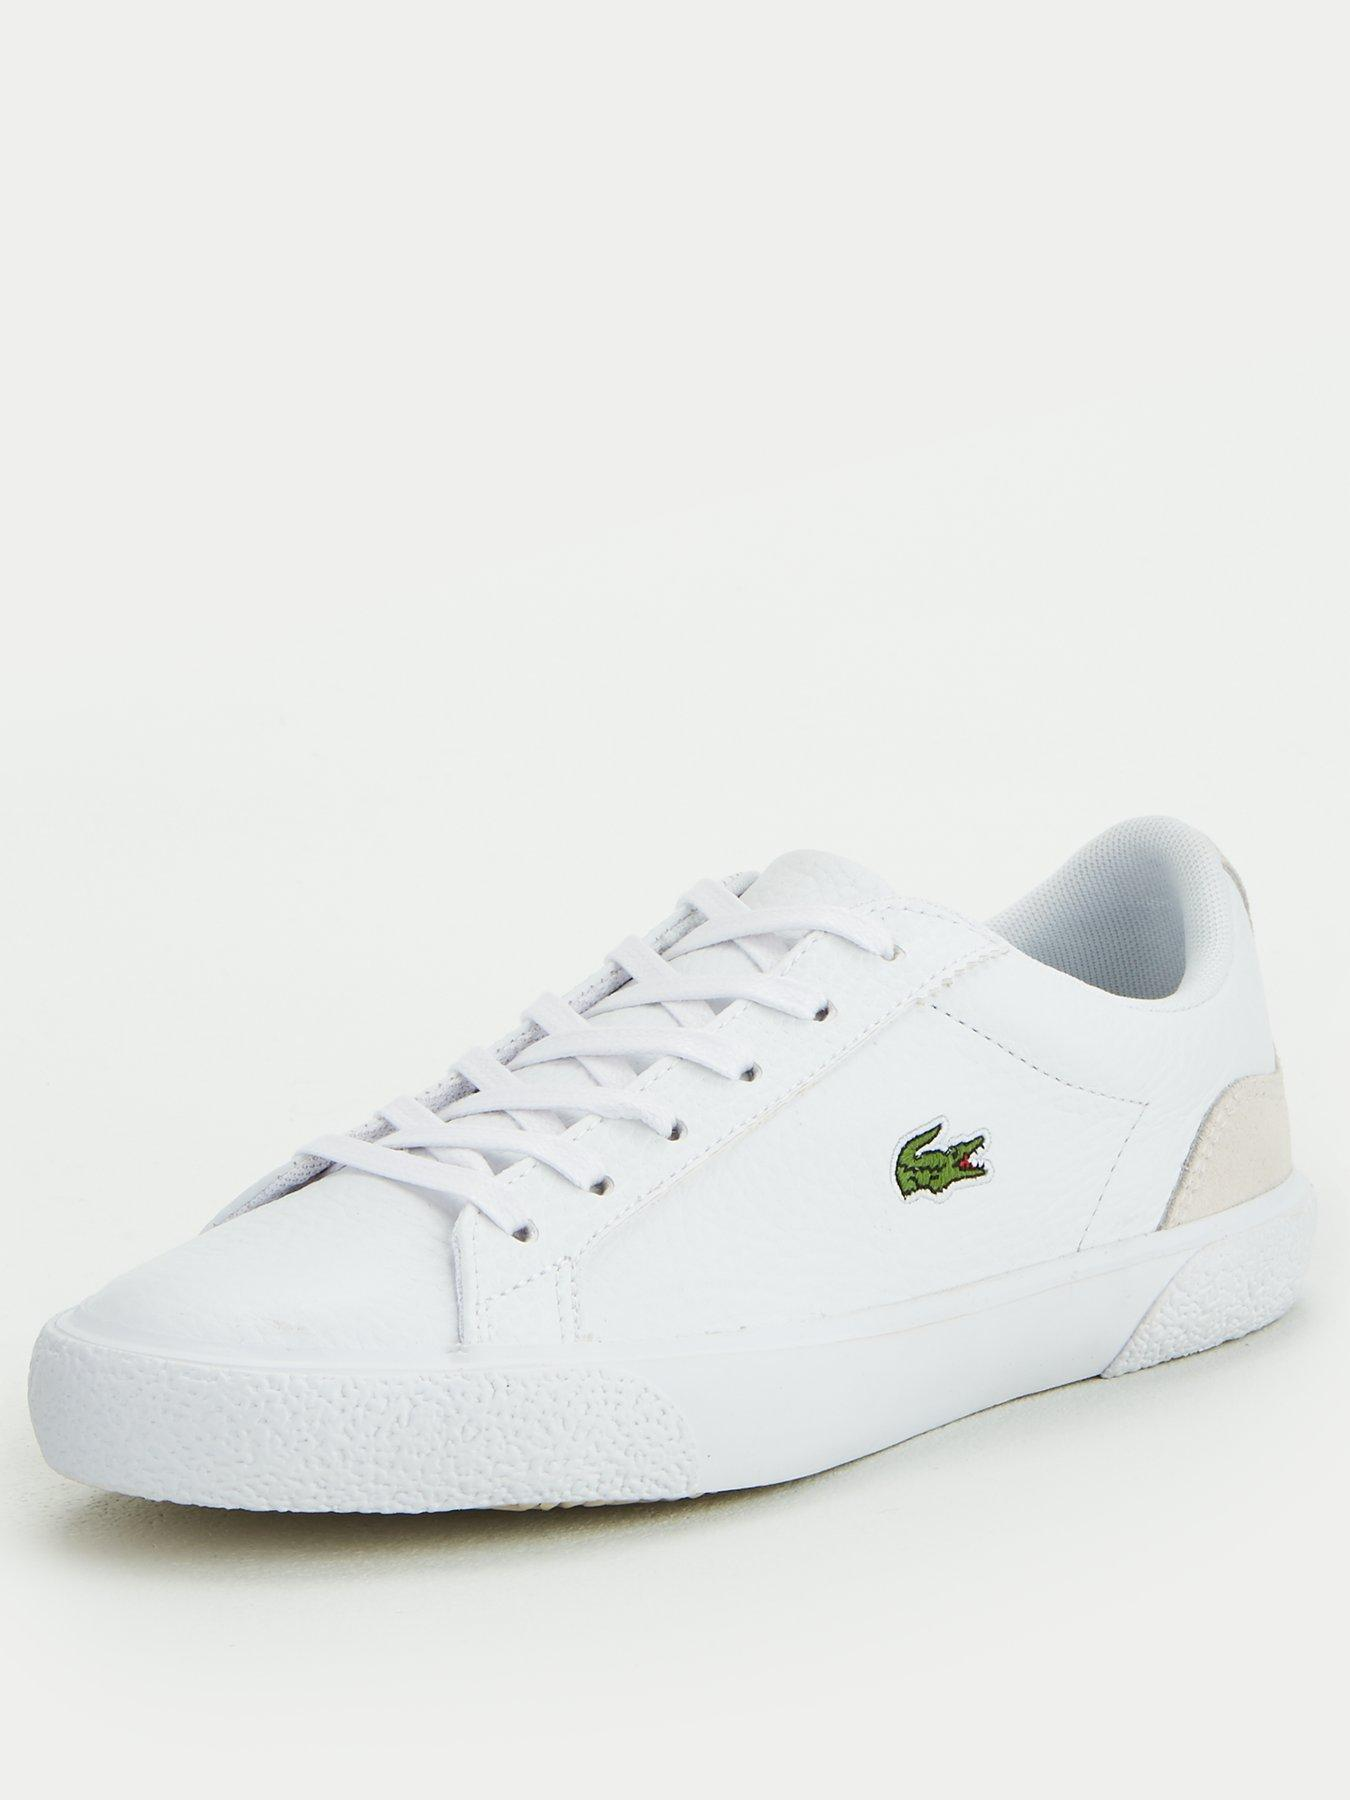 girls pink lacoste trainers - 53% OFF